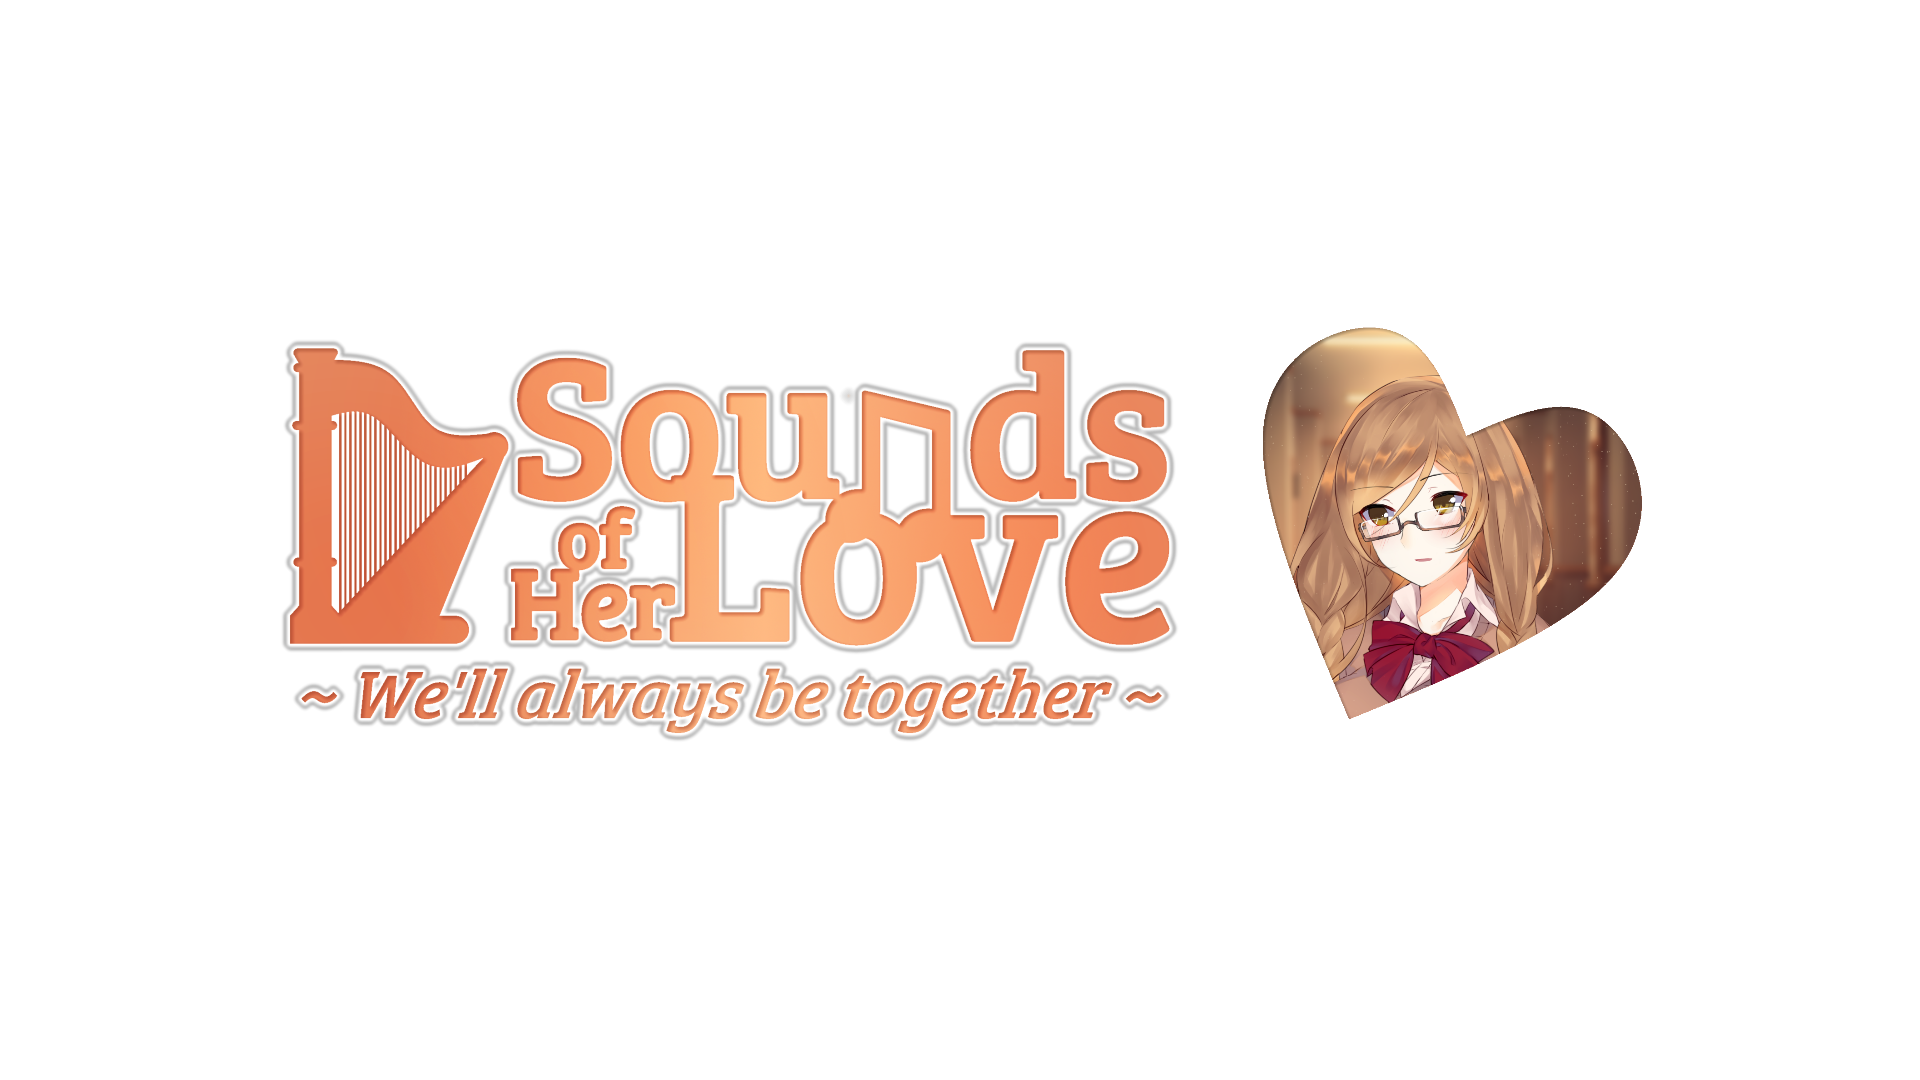 Sounds of Her Love ~We'll always be together~